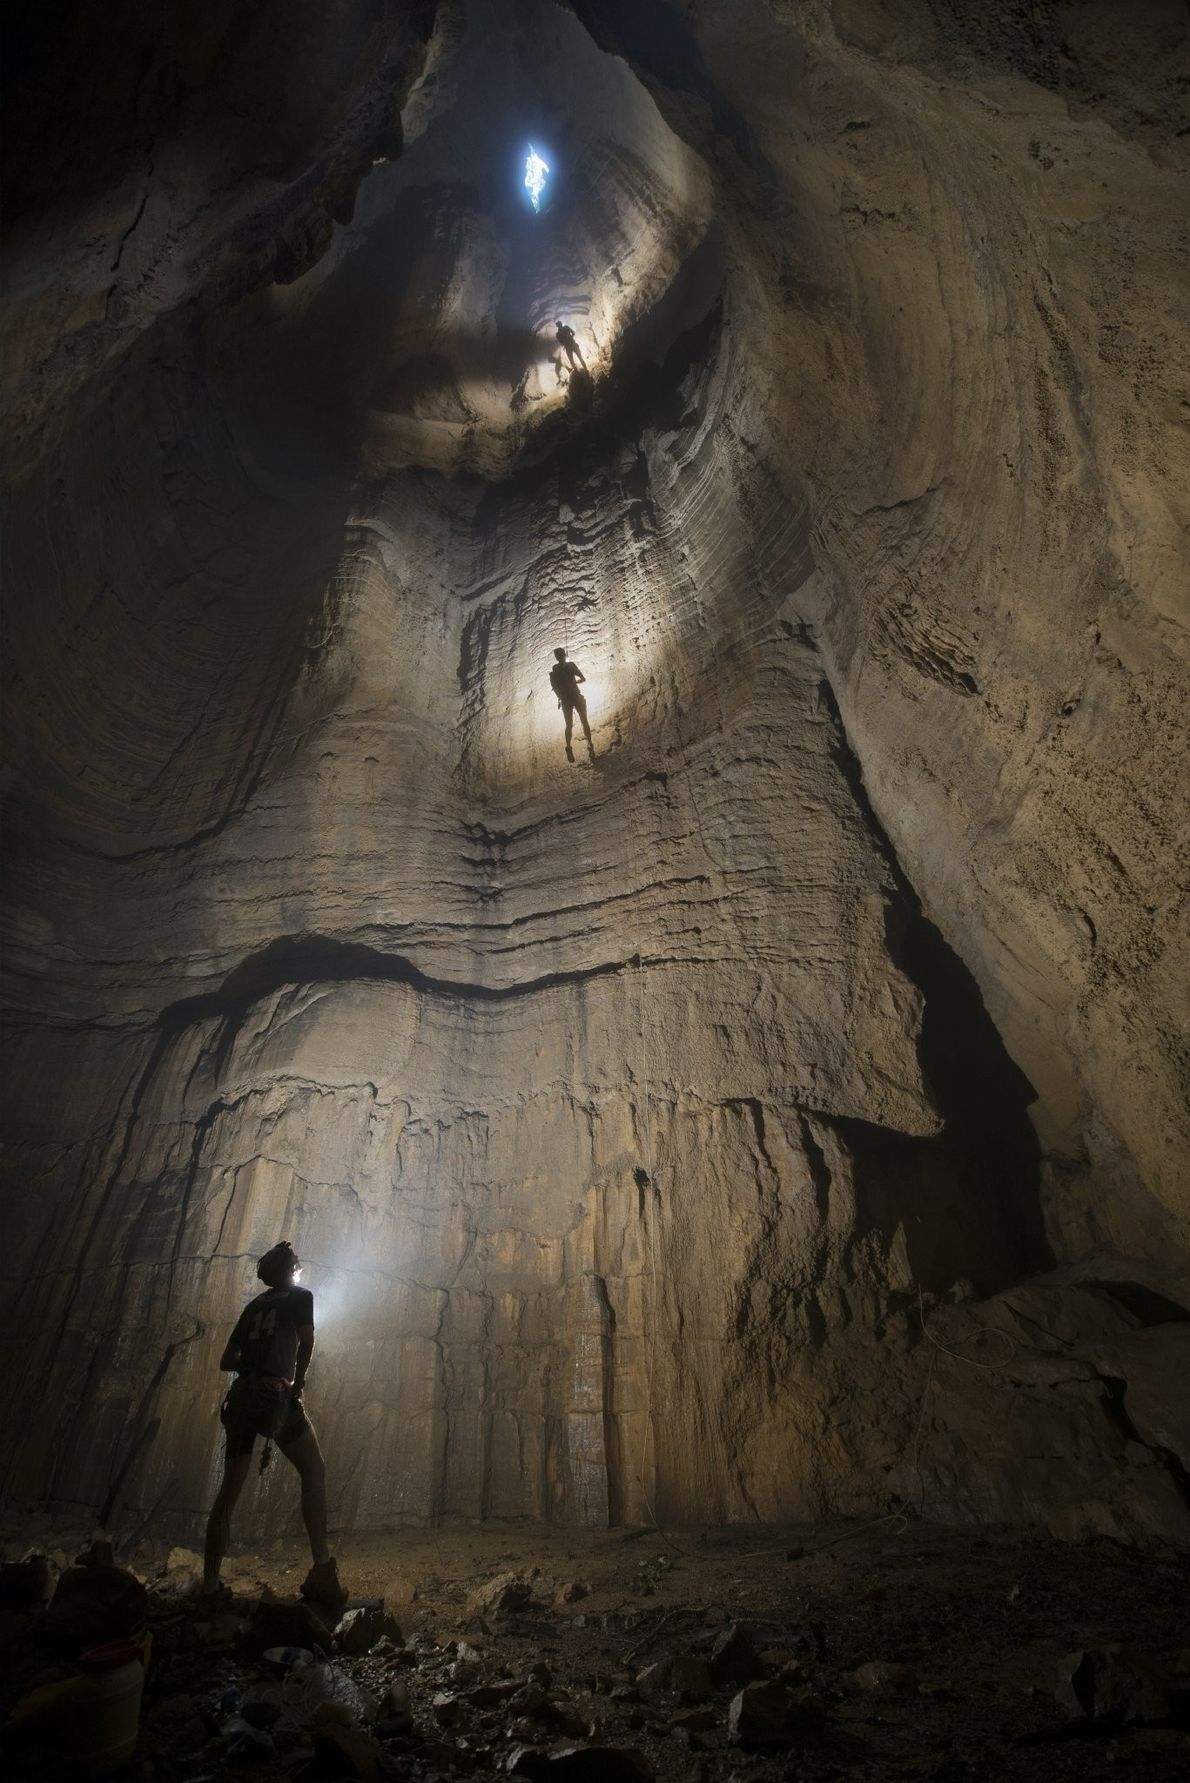 Your Shot photographer Ethan Reuter made this image inside a chasm within the backwoods near Scottsboro, ...